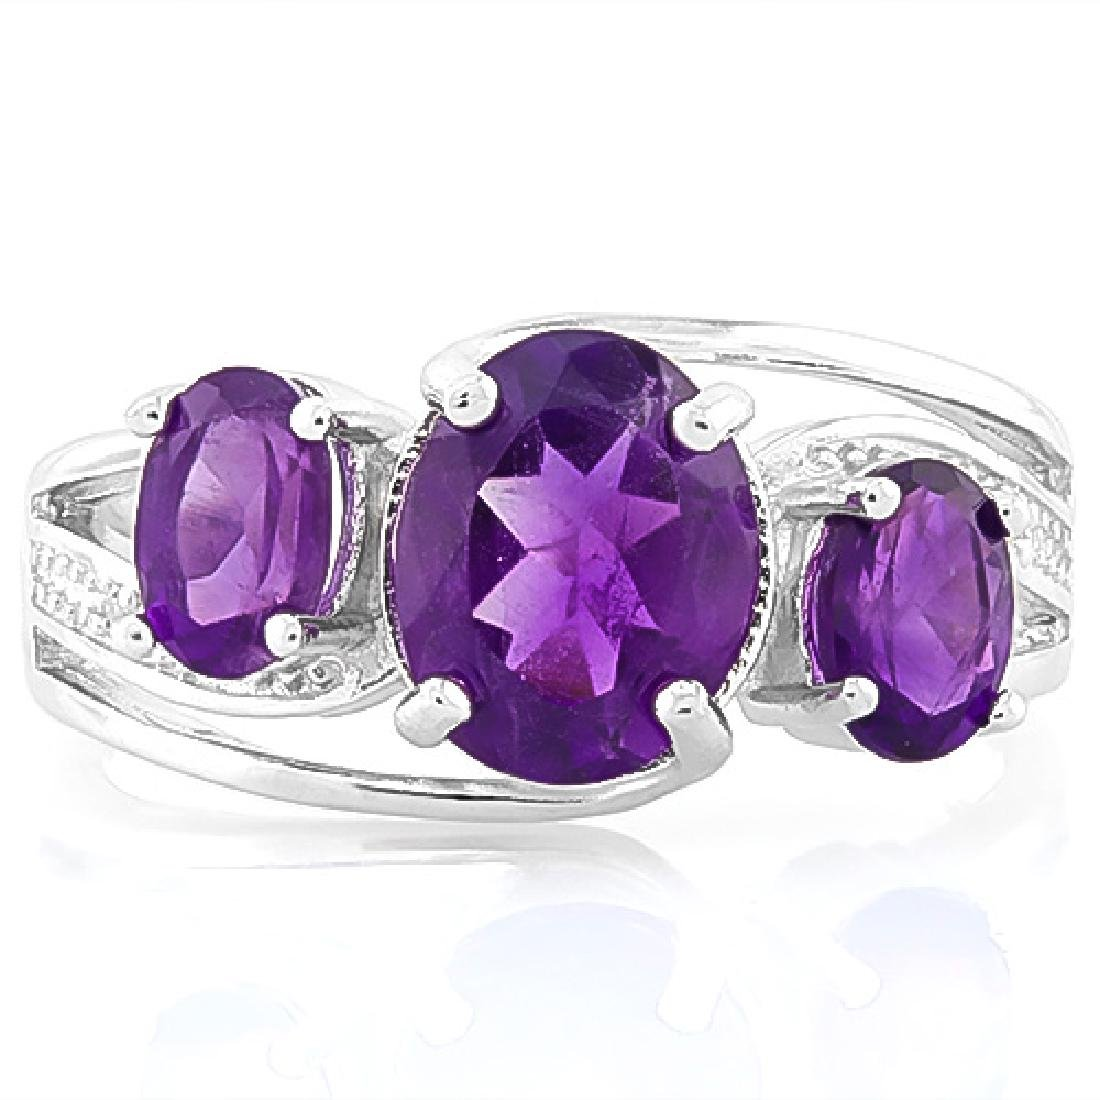 ELEGANT 925 STERLING SILVER RING WITH AMETHYST - 2